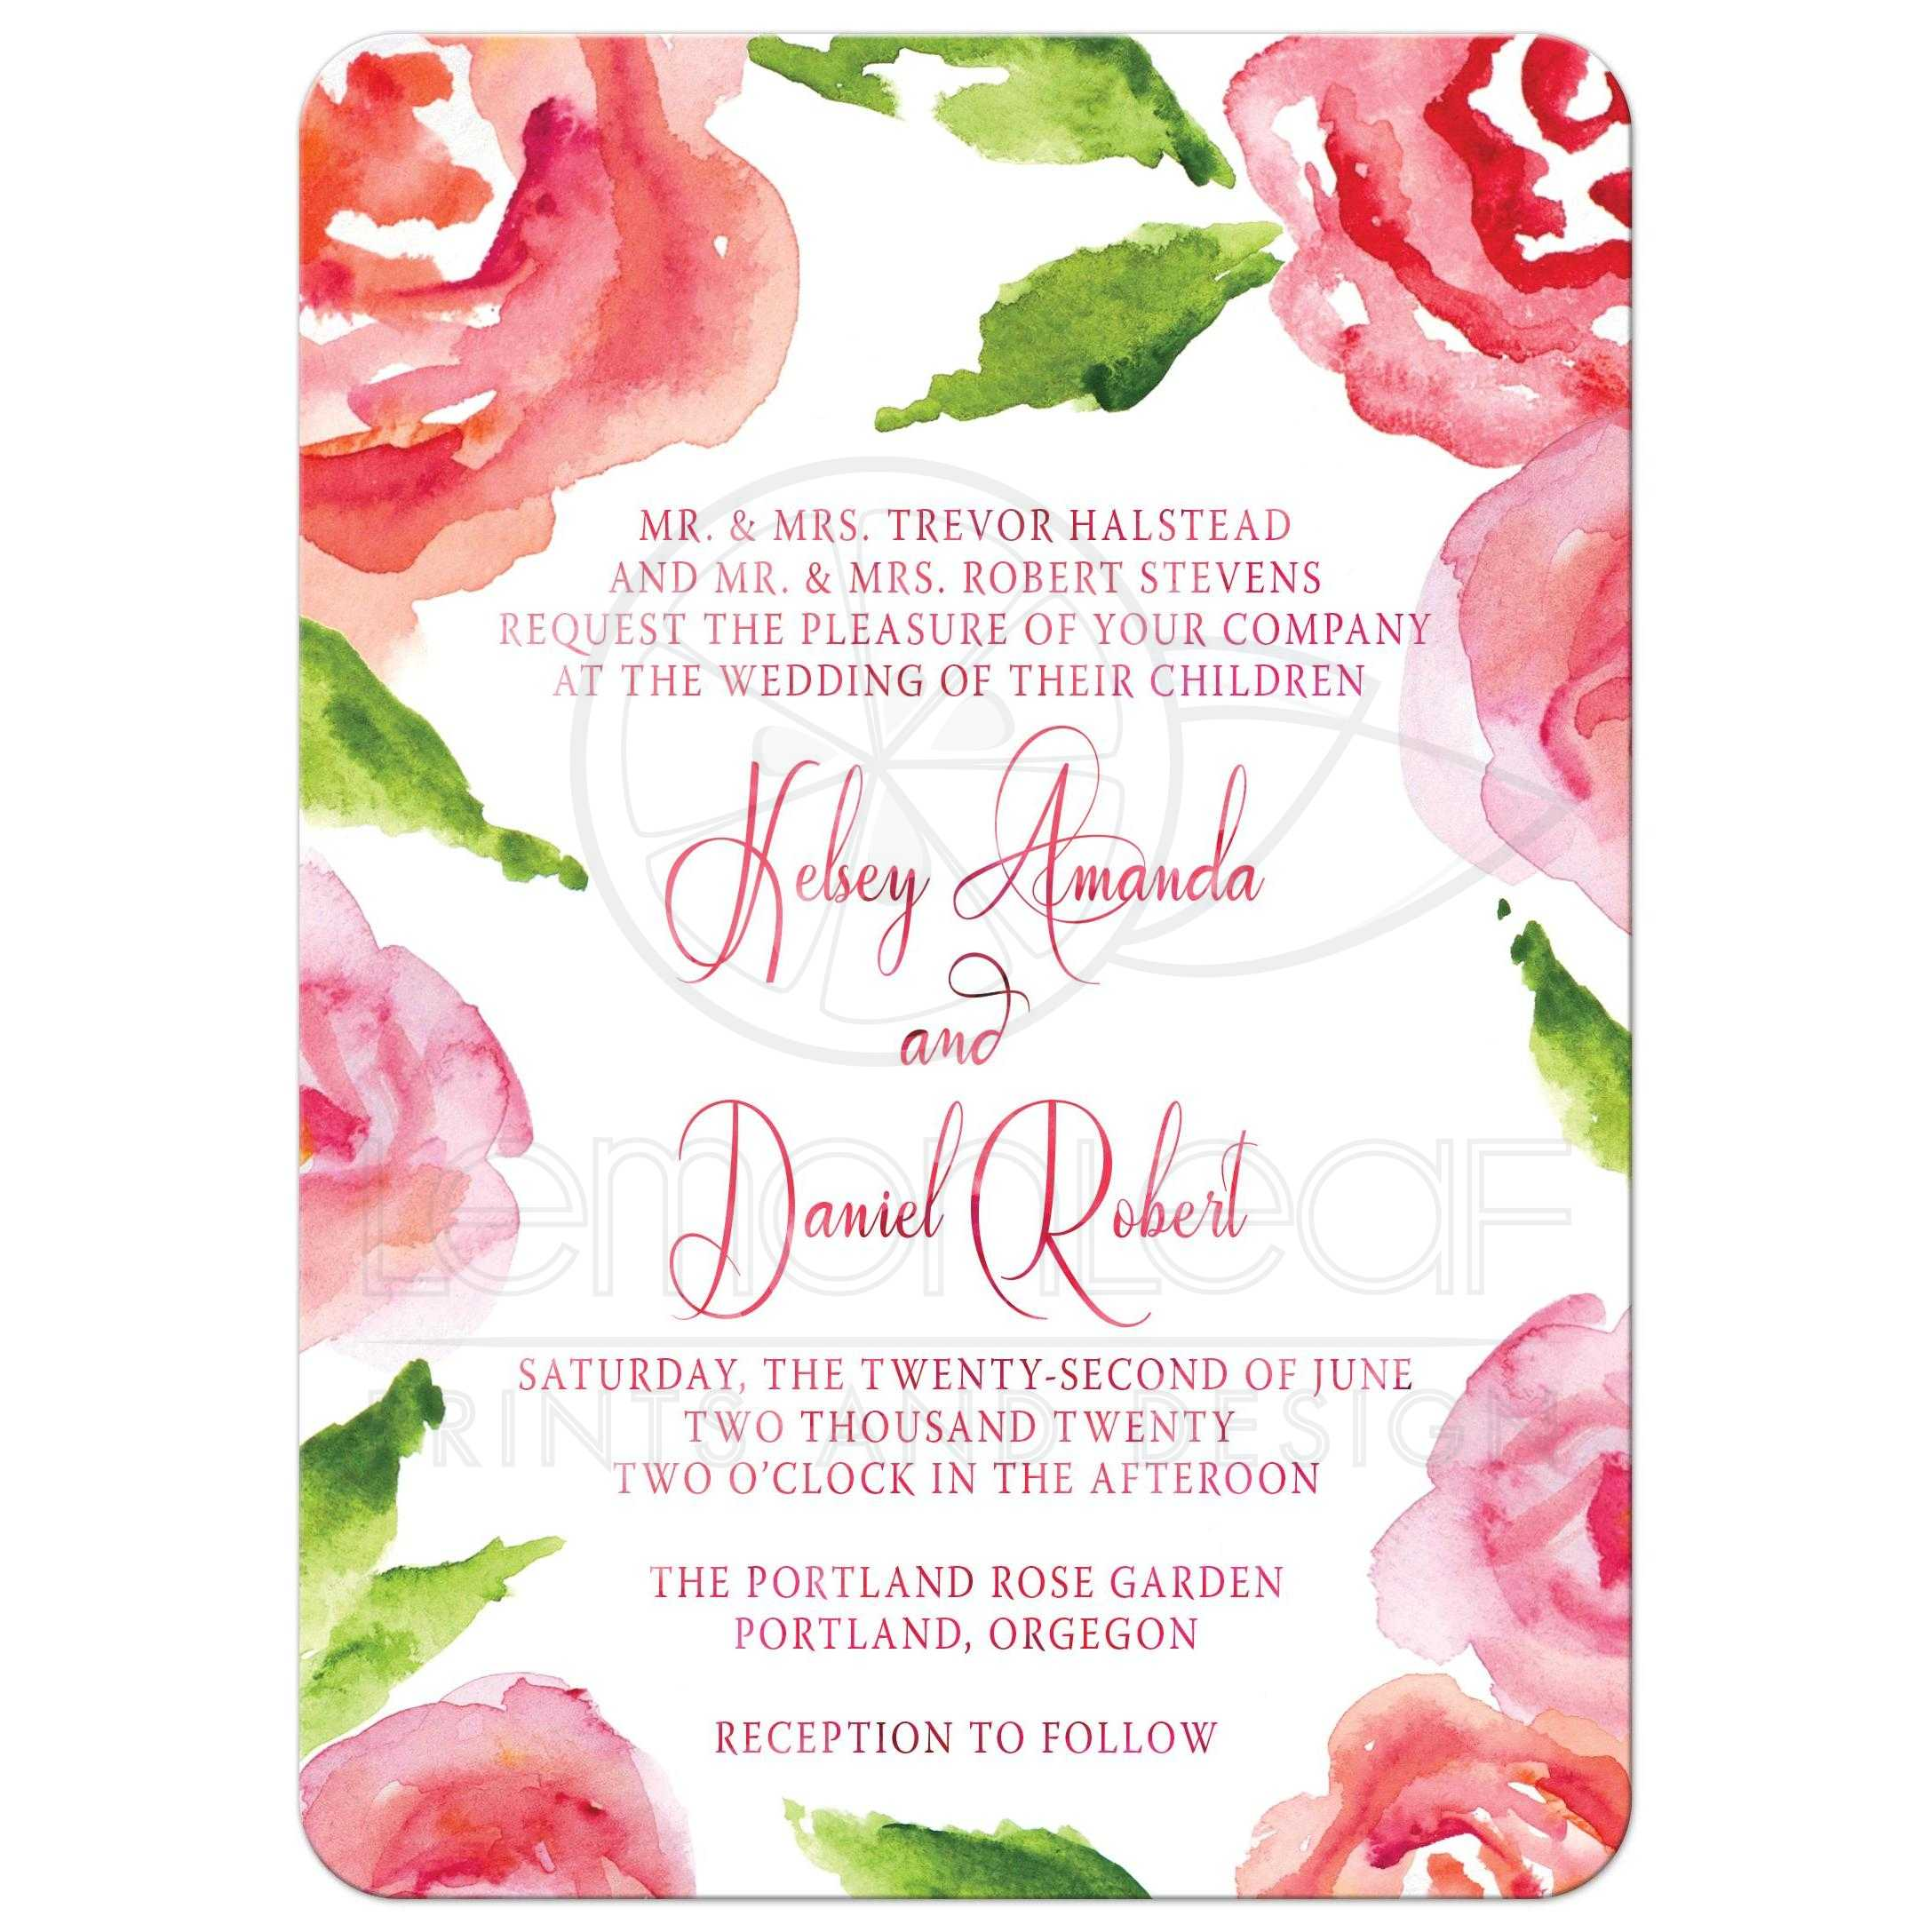 Wedding Invitations - Watercolor Rose Garden